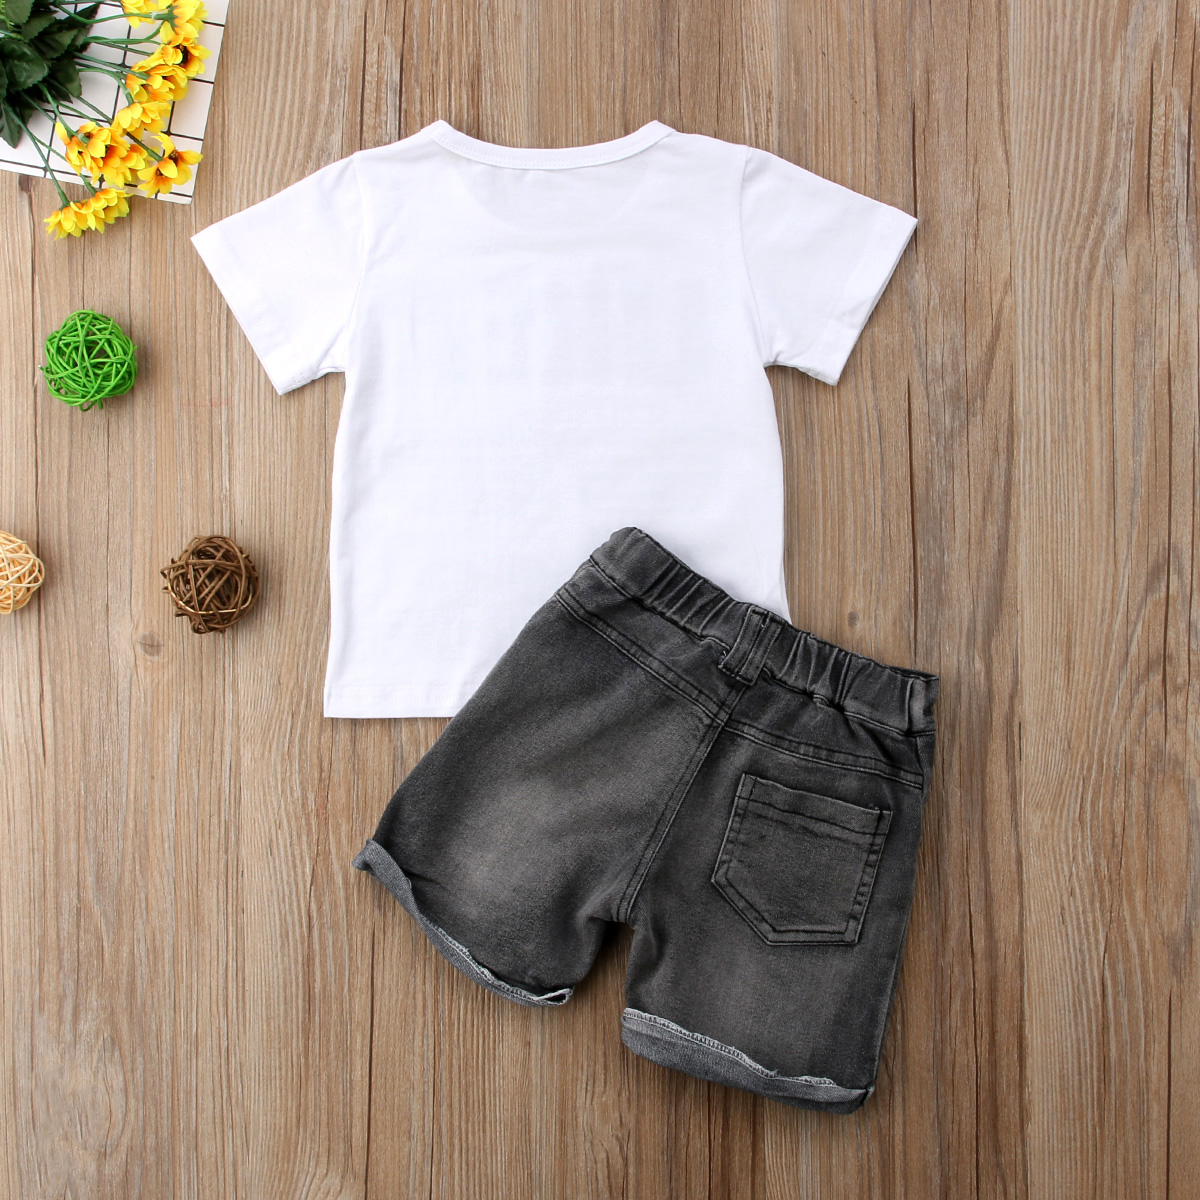 266801f3a8ce Boutique Kids Clothes Summer Baby Boy Clothes Letter Eyeglass Print Toddler  Boys Clothing Sets 2018 New Children Cotton Suit-in Clothing Sets from  Mother ...